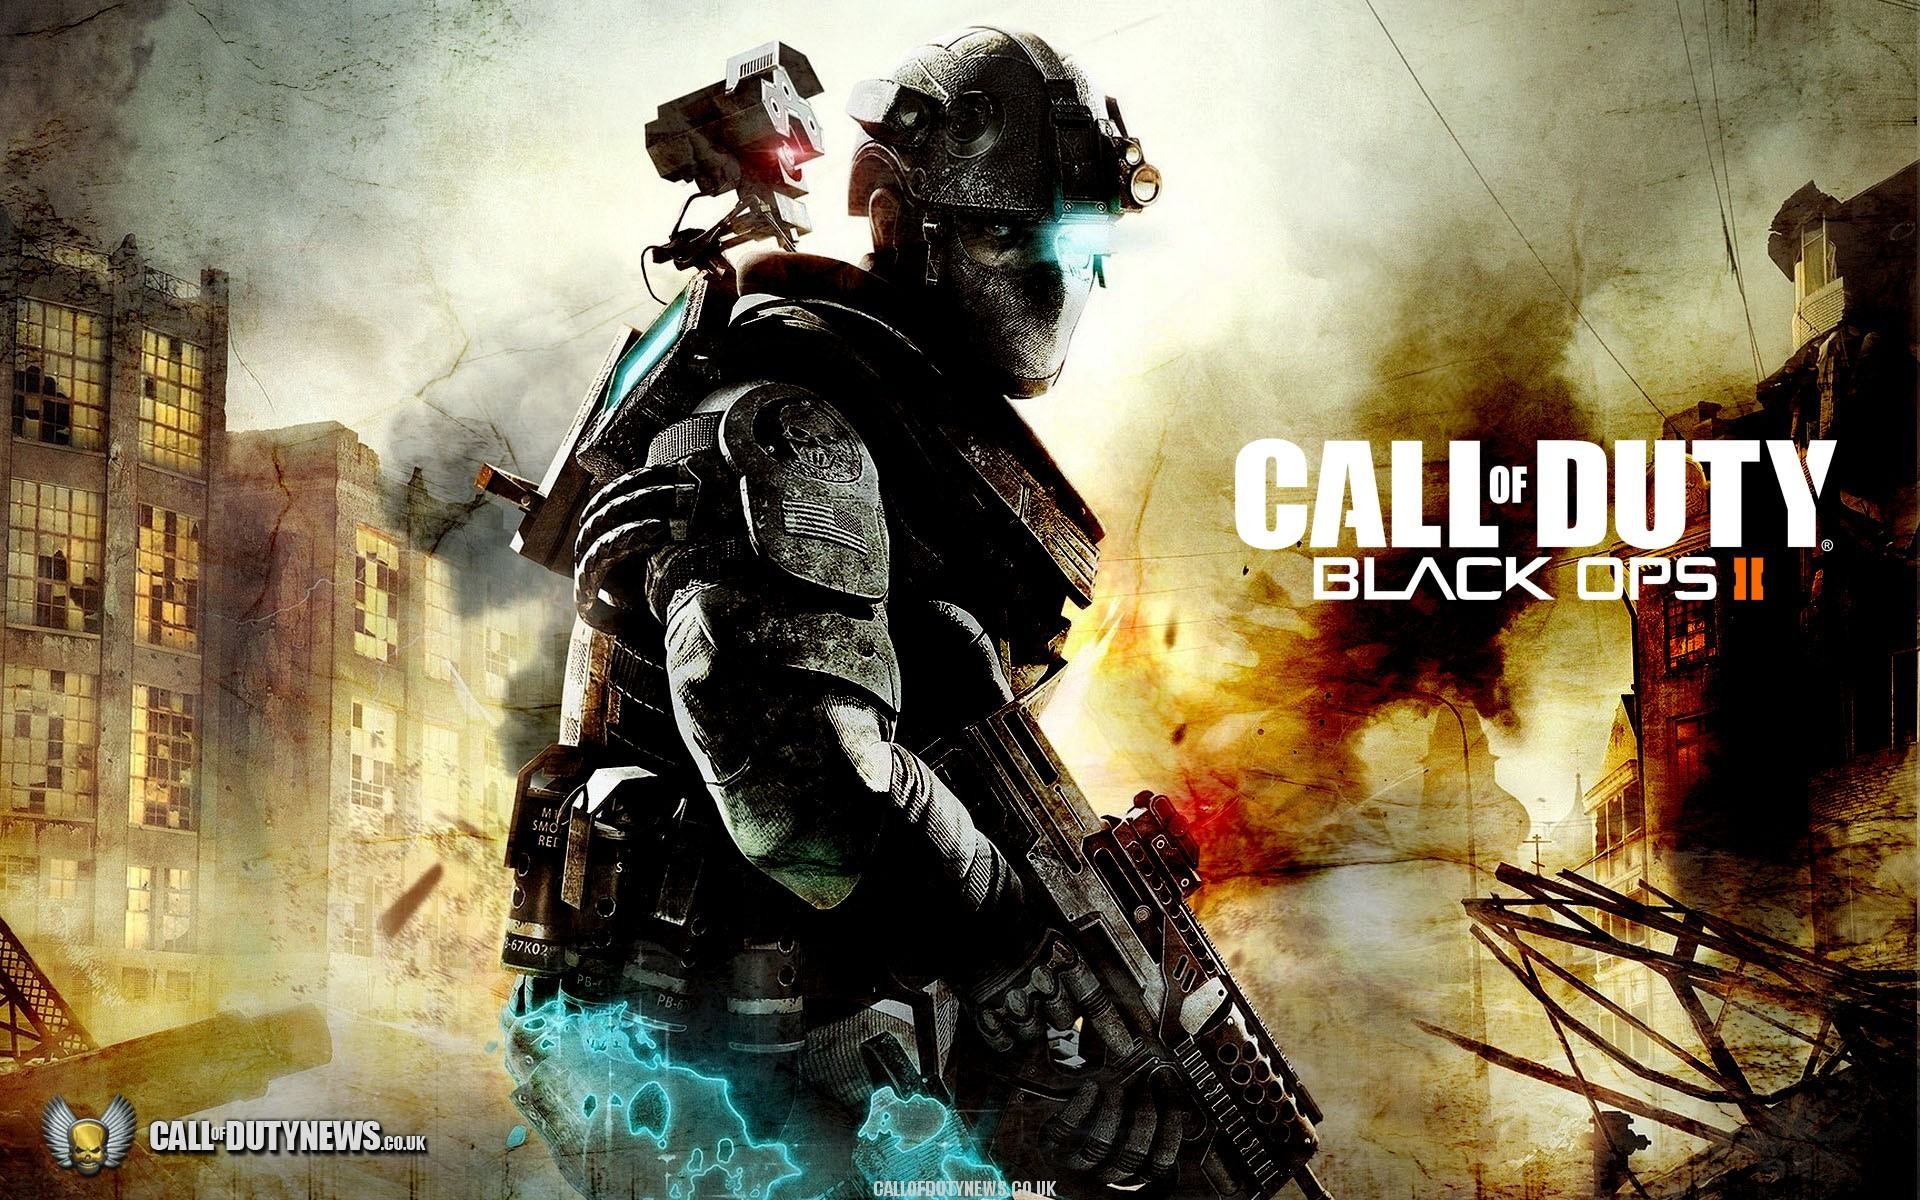 1920x1080 Call Of Duty Black Ops 2 Zombies Wallpaper 2560 X 1440 Hd Pix